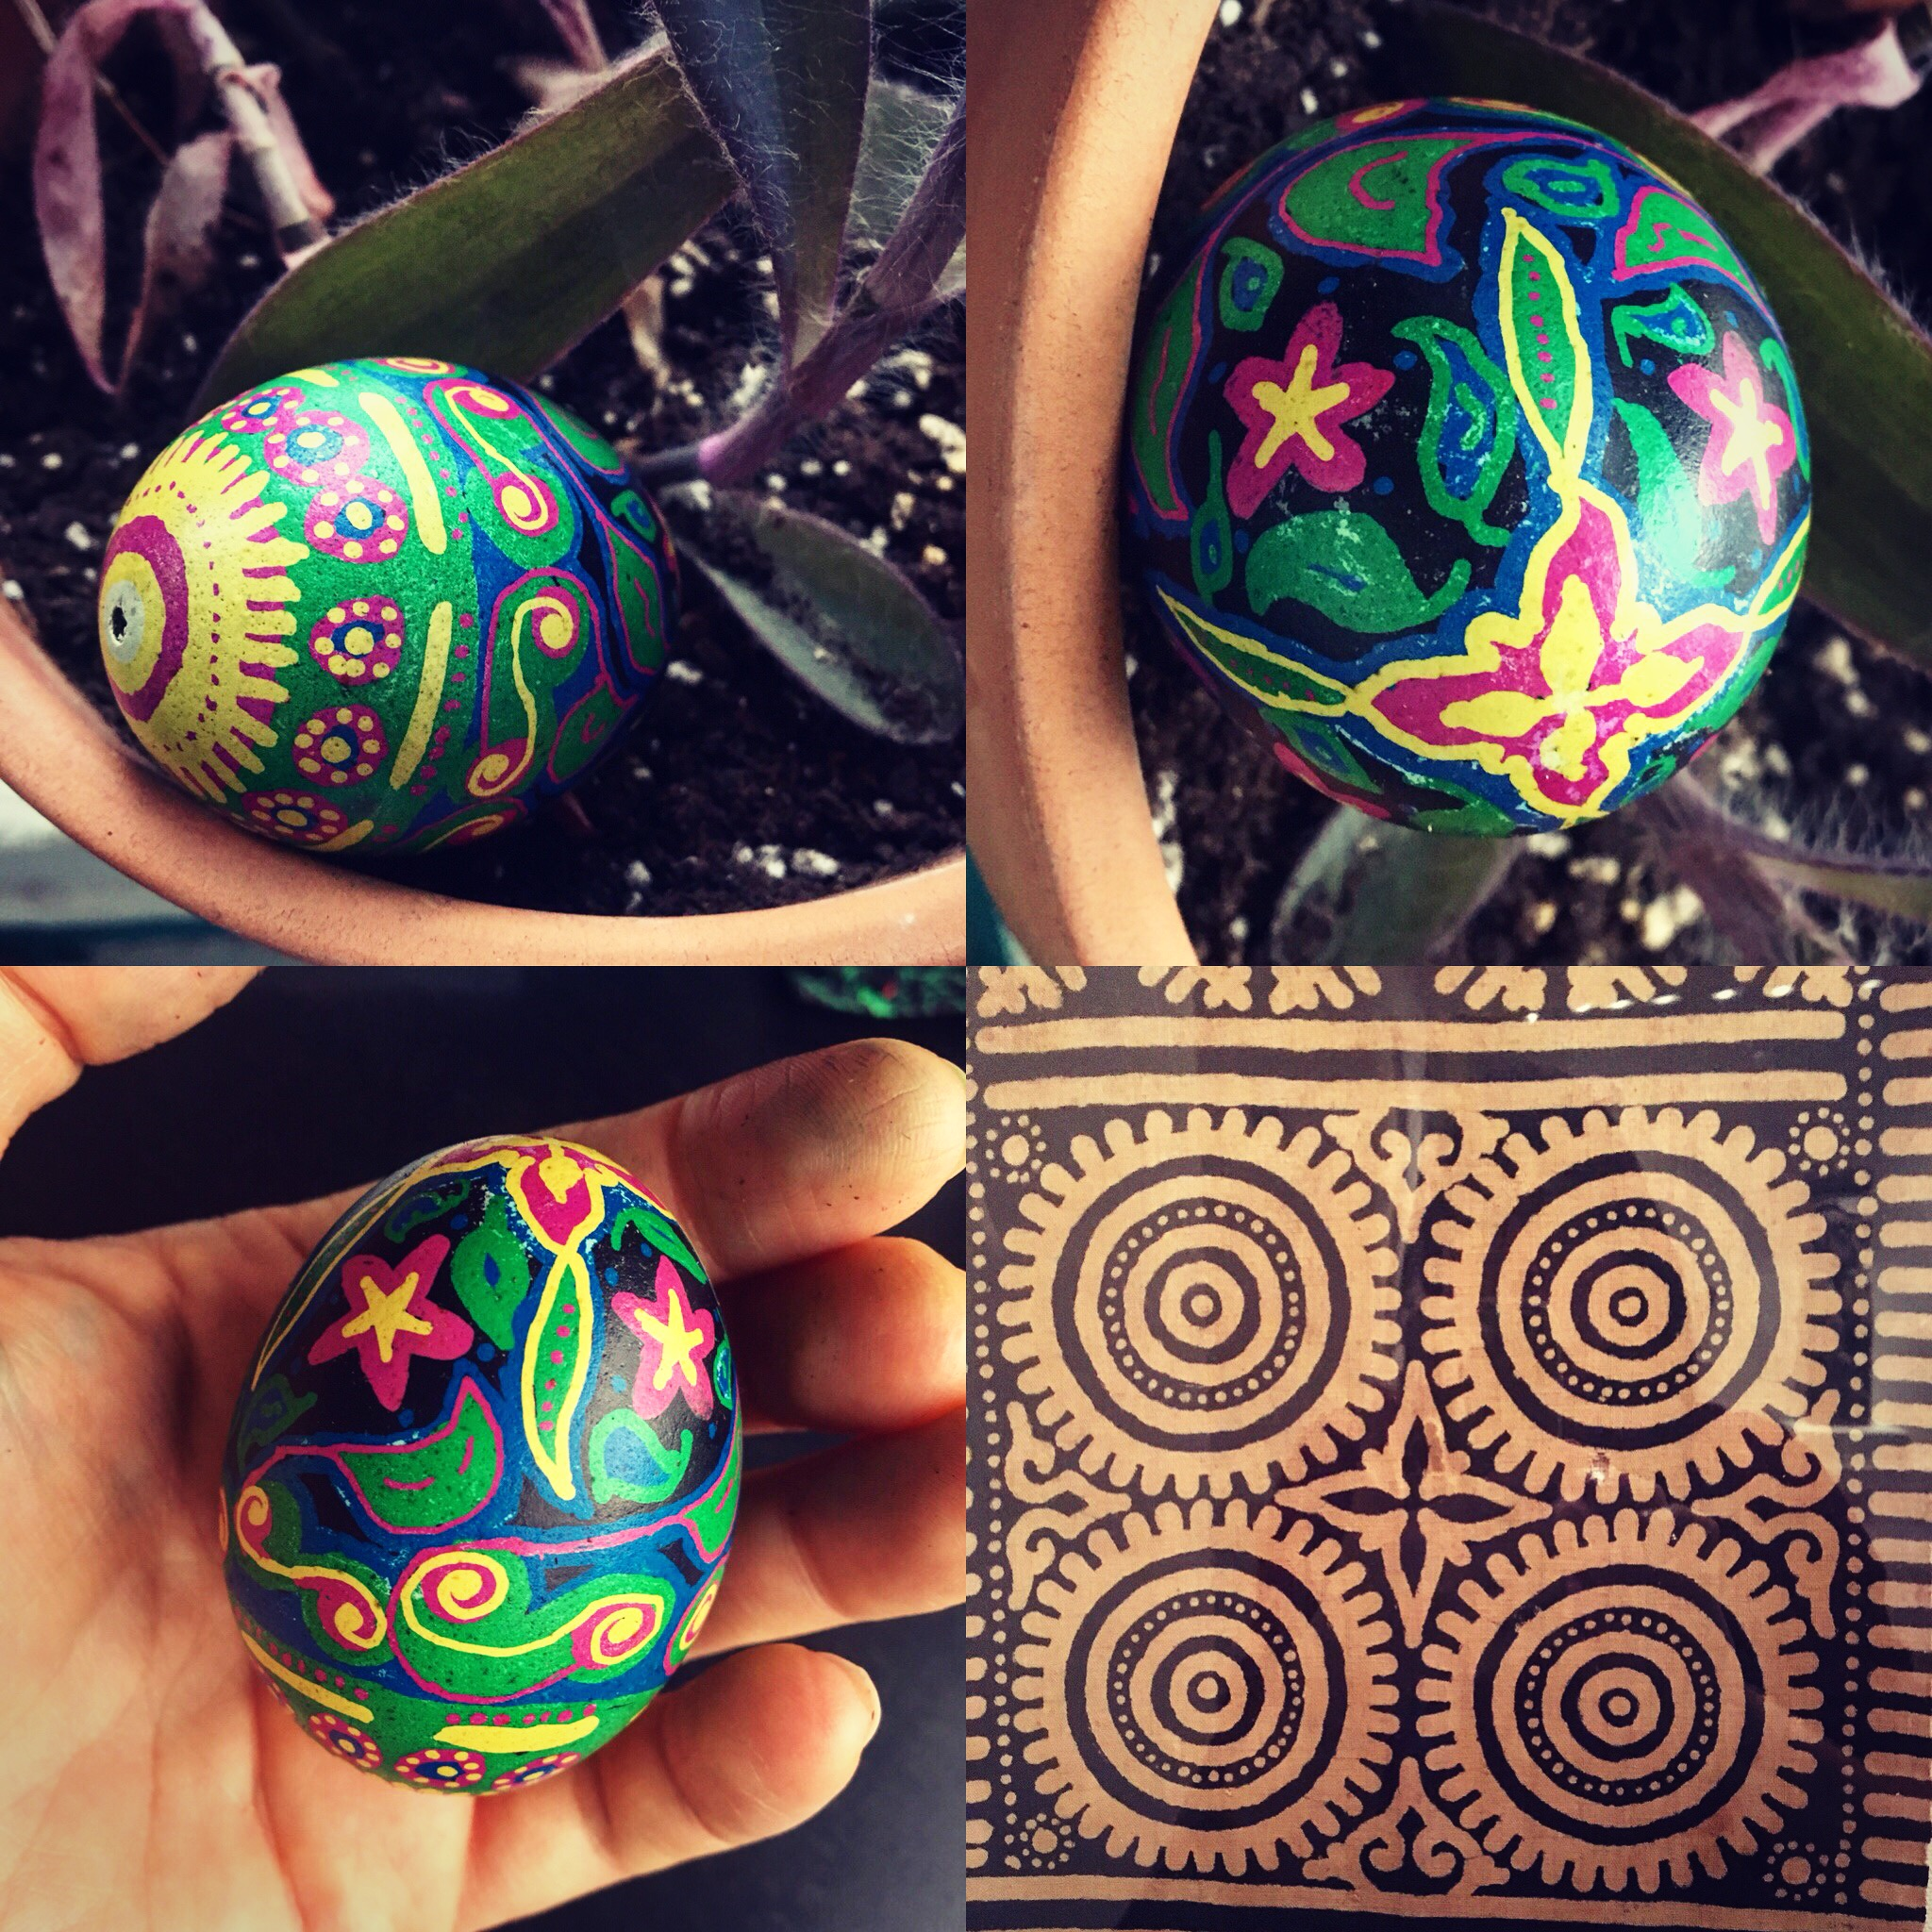 Traditional pysanky technique with motifs inspired by Indonesian ceremonial textiles, used in rituals marking times of transition.